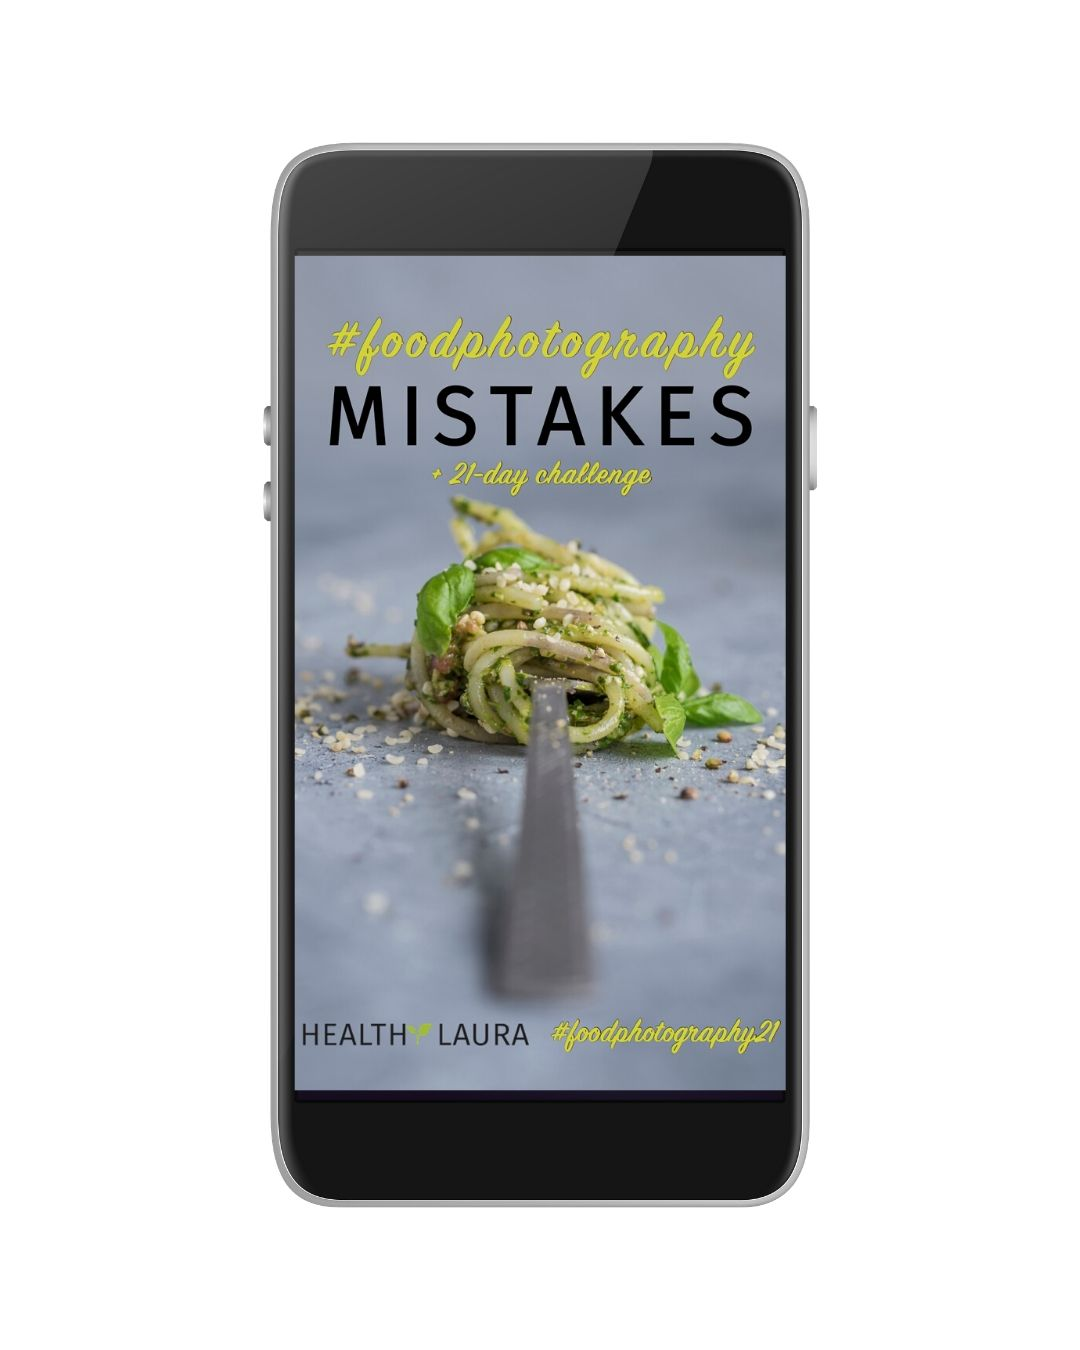 My Food Photography Mistakes eBook 2019 by Healthy Laura Food Photography & Styling @healthylauracom Laura Kuklase